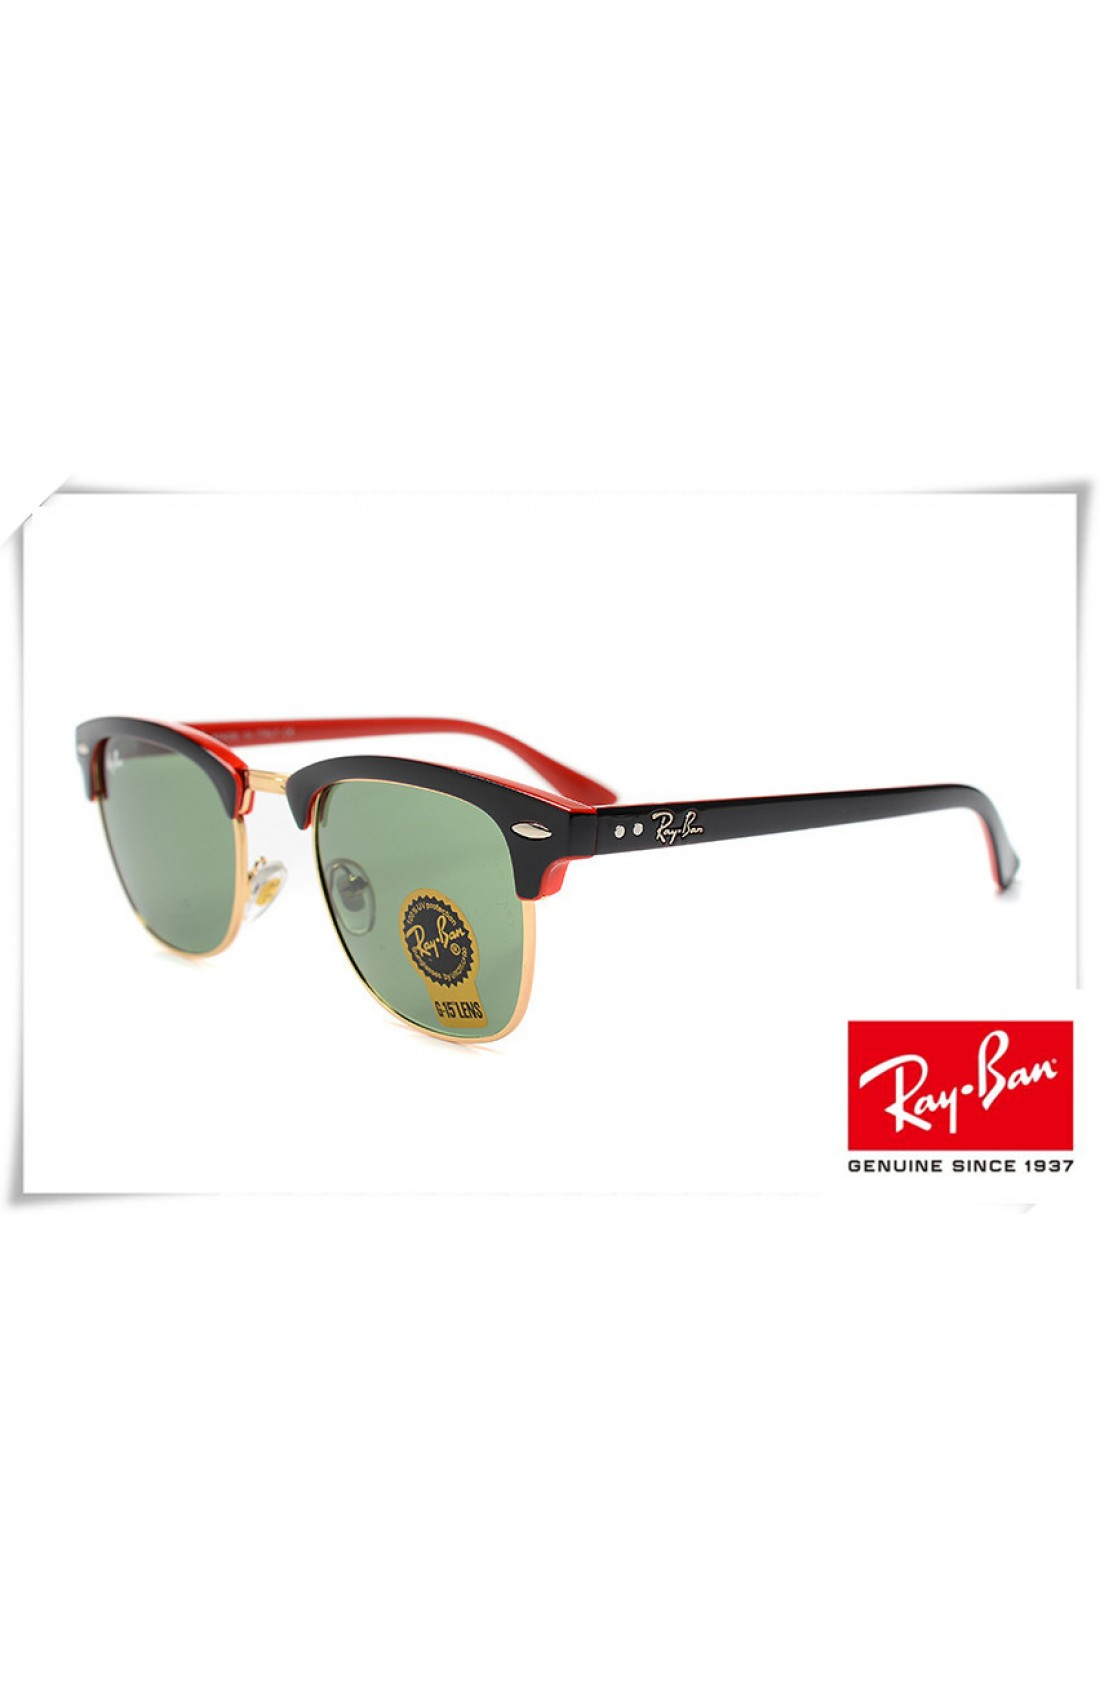 060c863423be6 Replica Ray Ban RB3016 Classic Clubmaster Sunglasses Black Red Frame ...